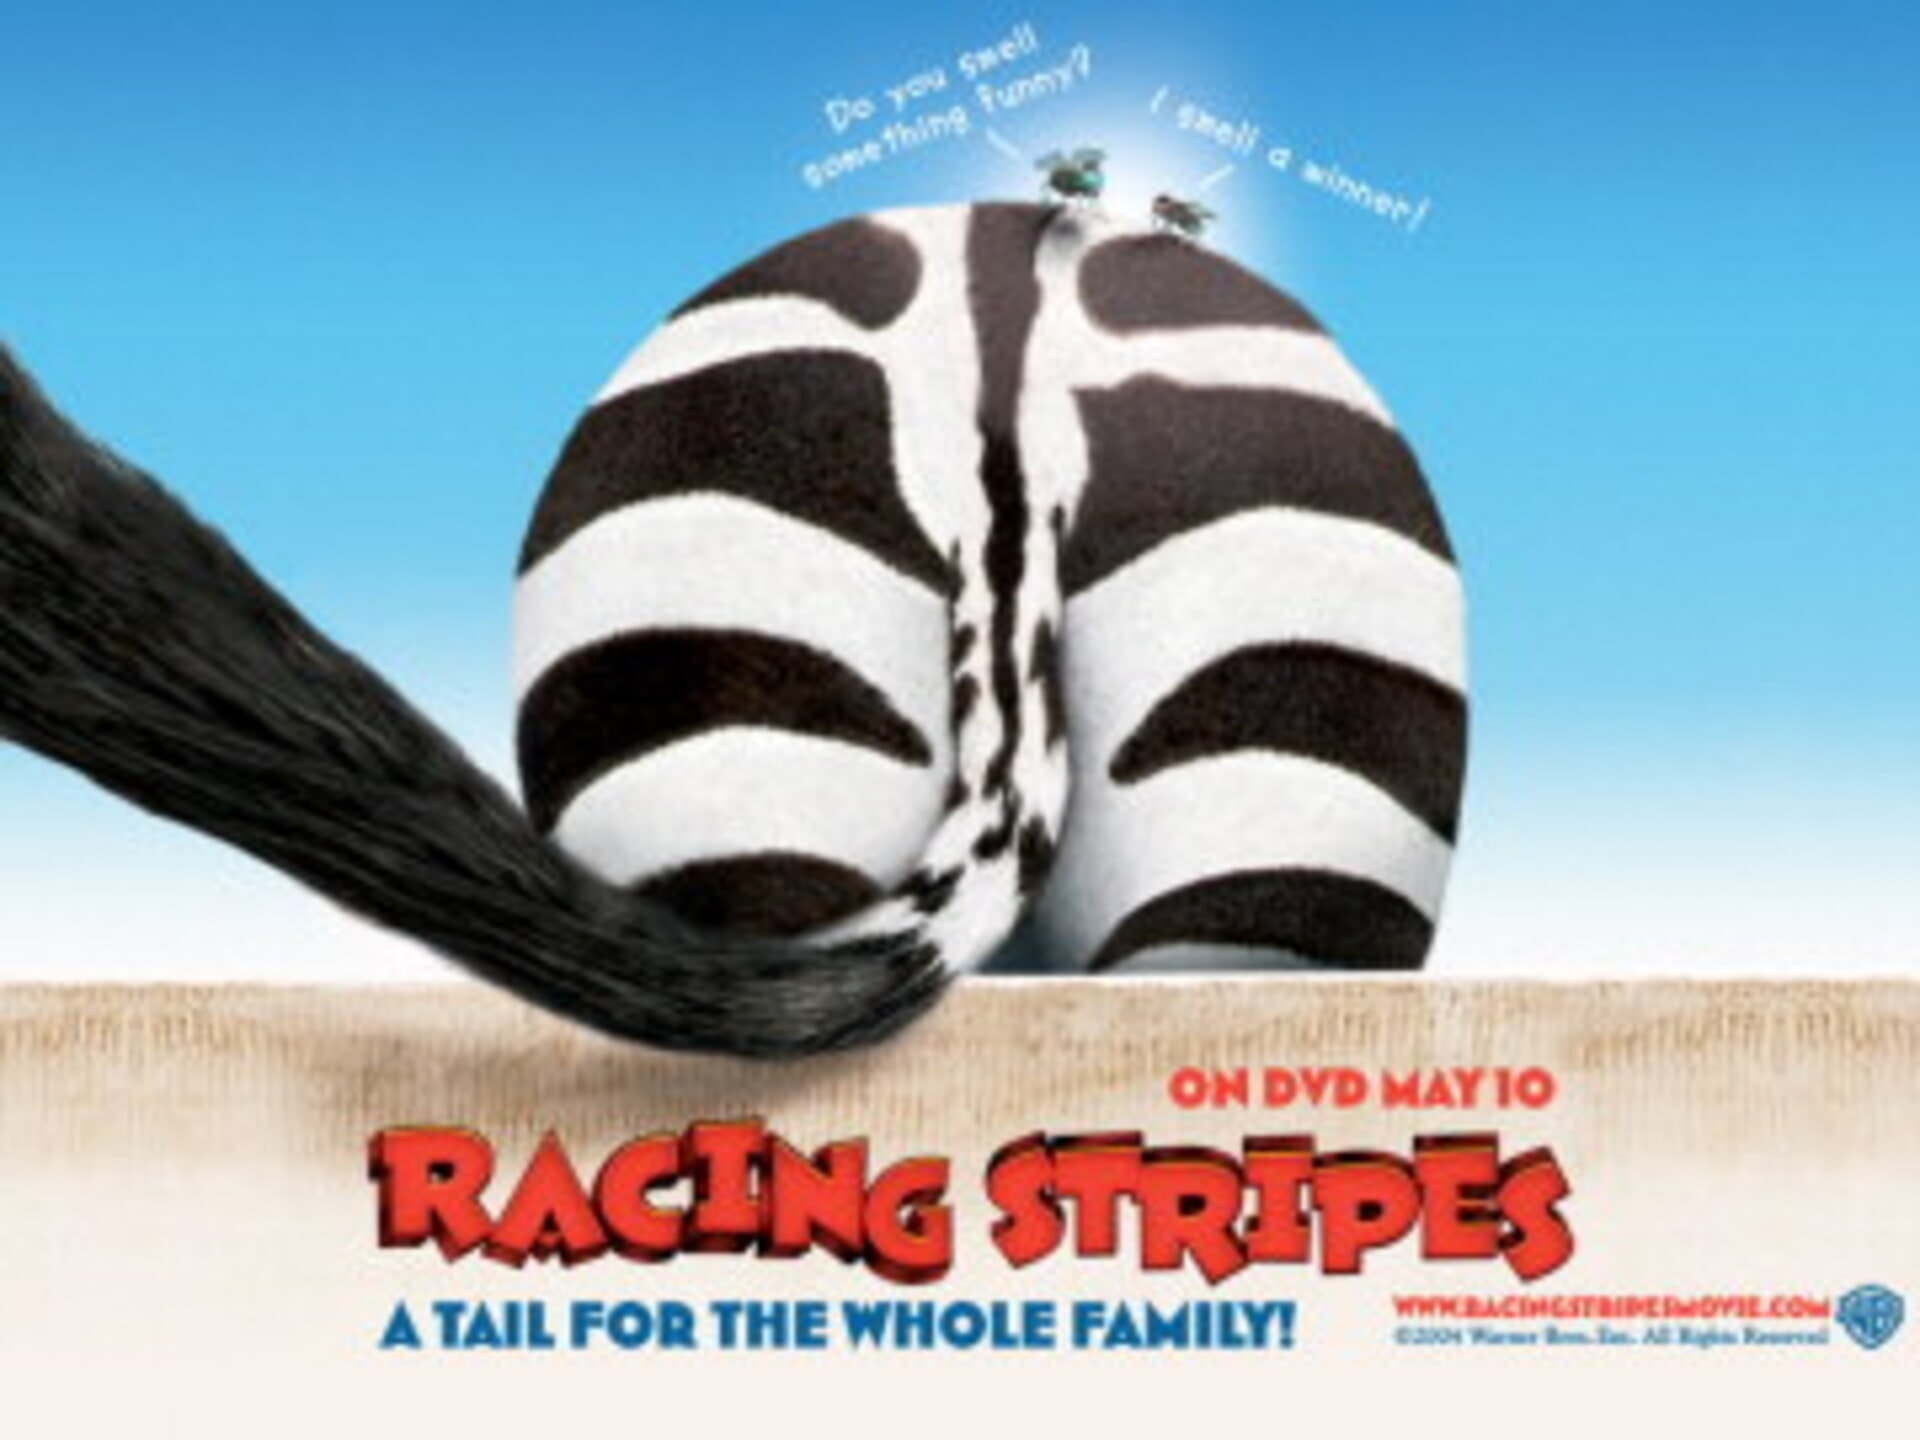 Racing Stripes - Image 34